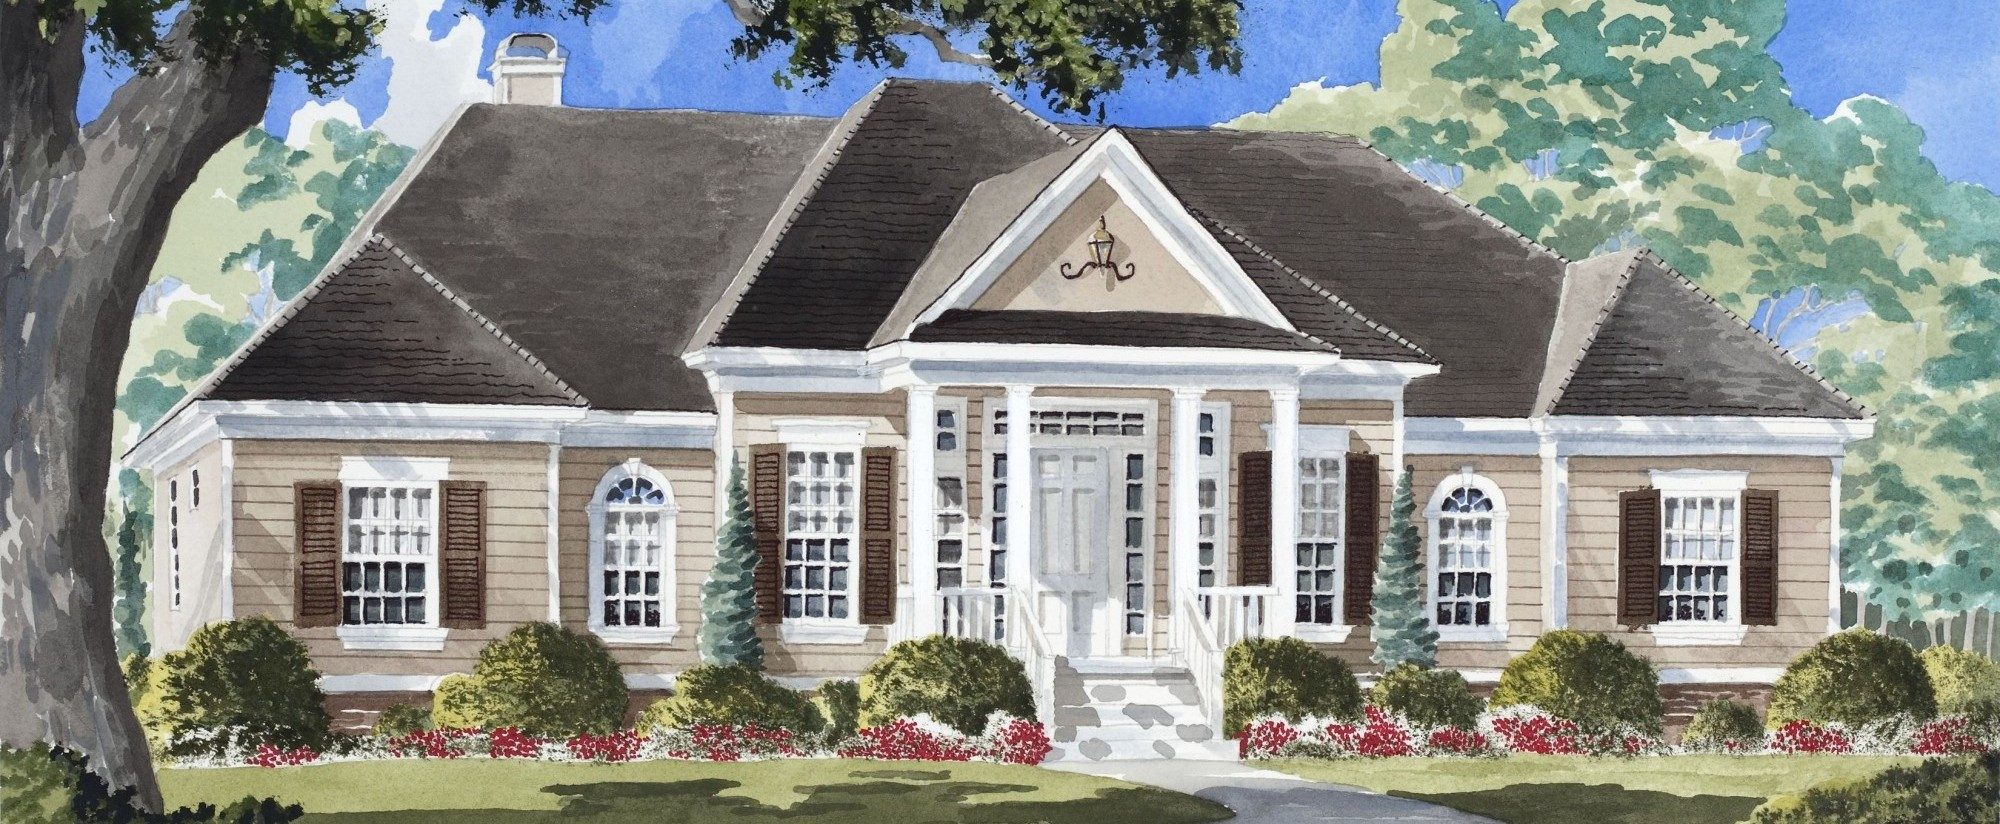 Southern Living Showcase Home!